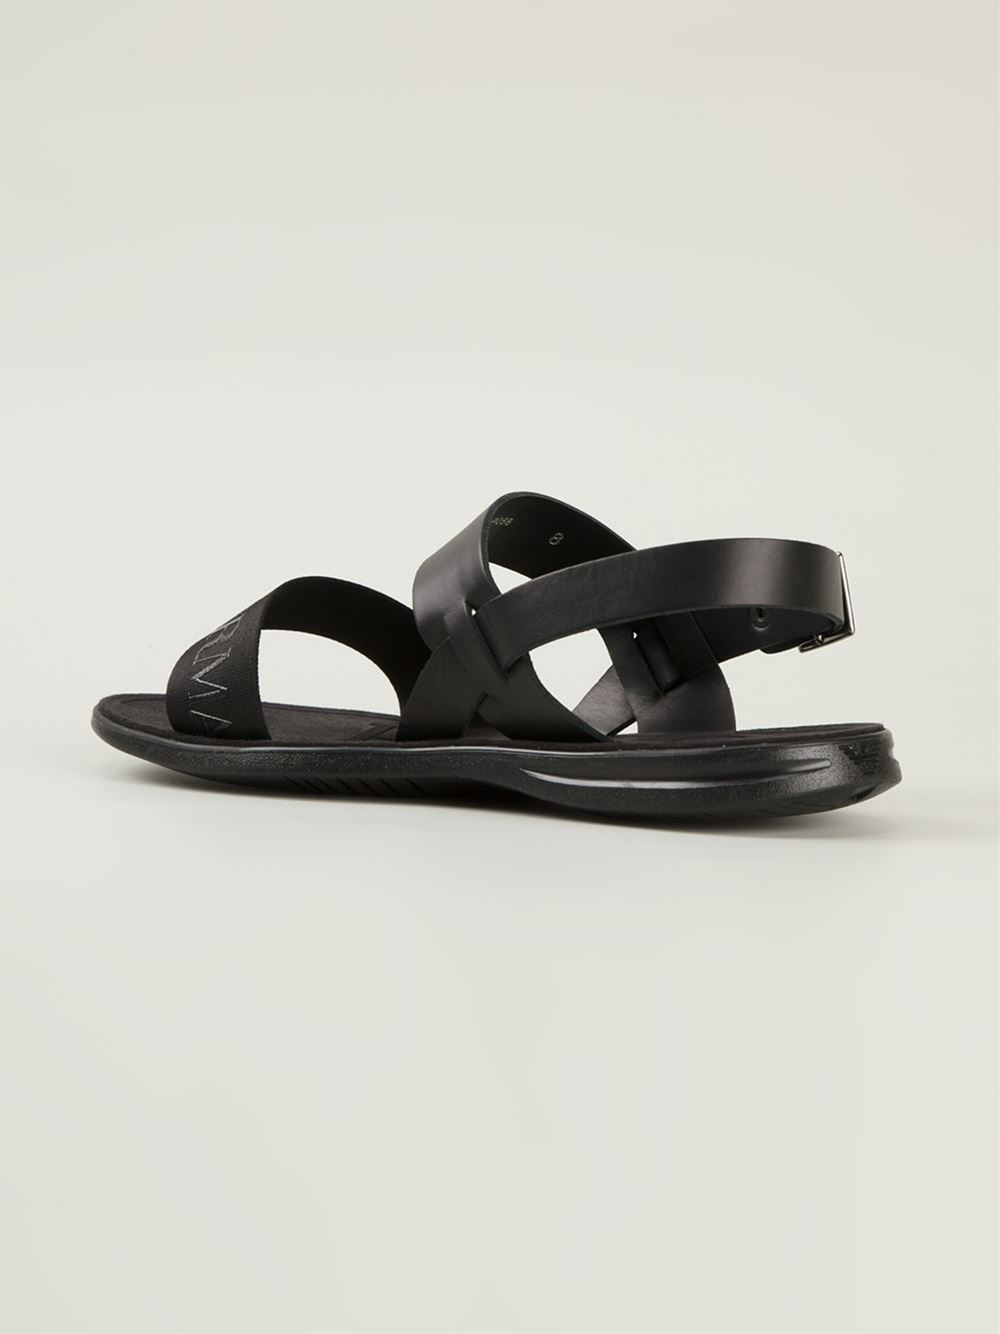 3b38790558be Emporio Armani Embossed Logo Strap Sandals in Black for Men - Lyst